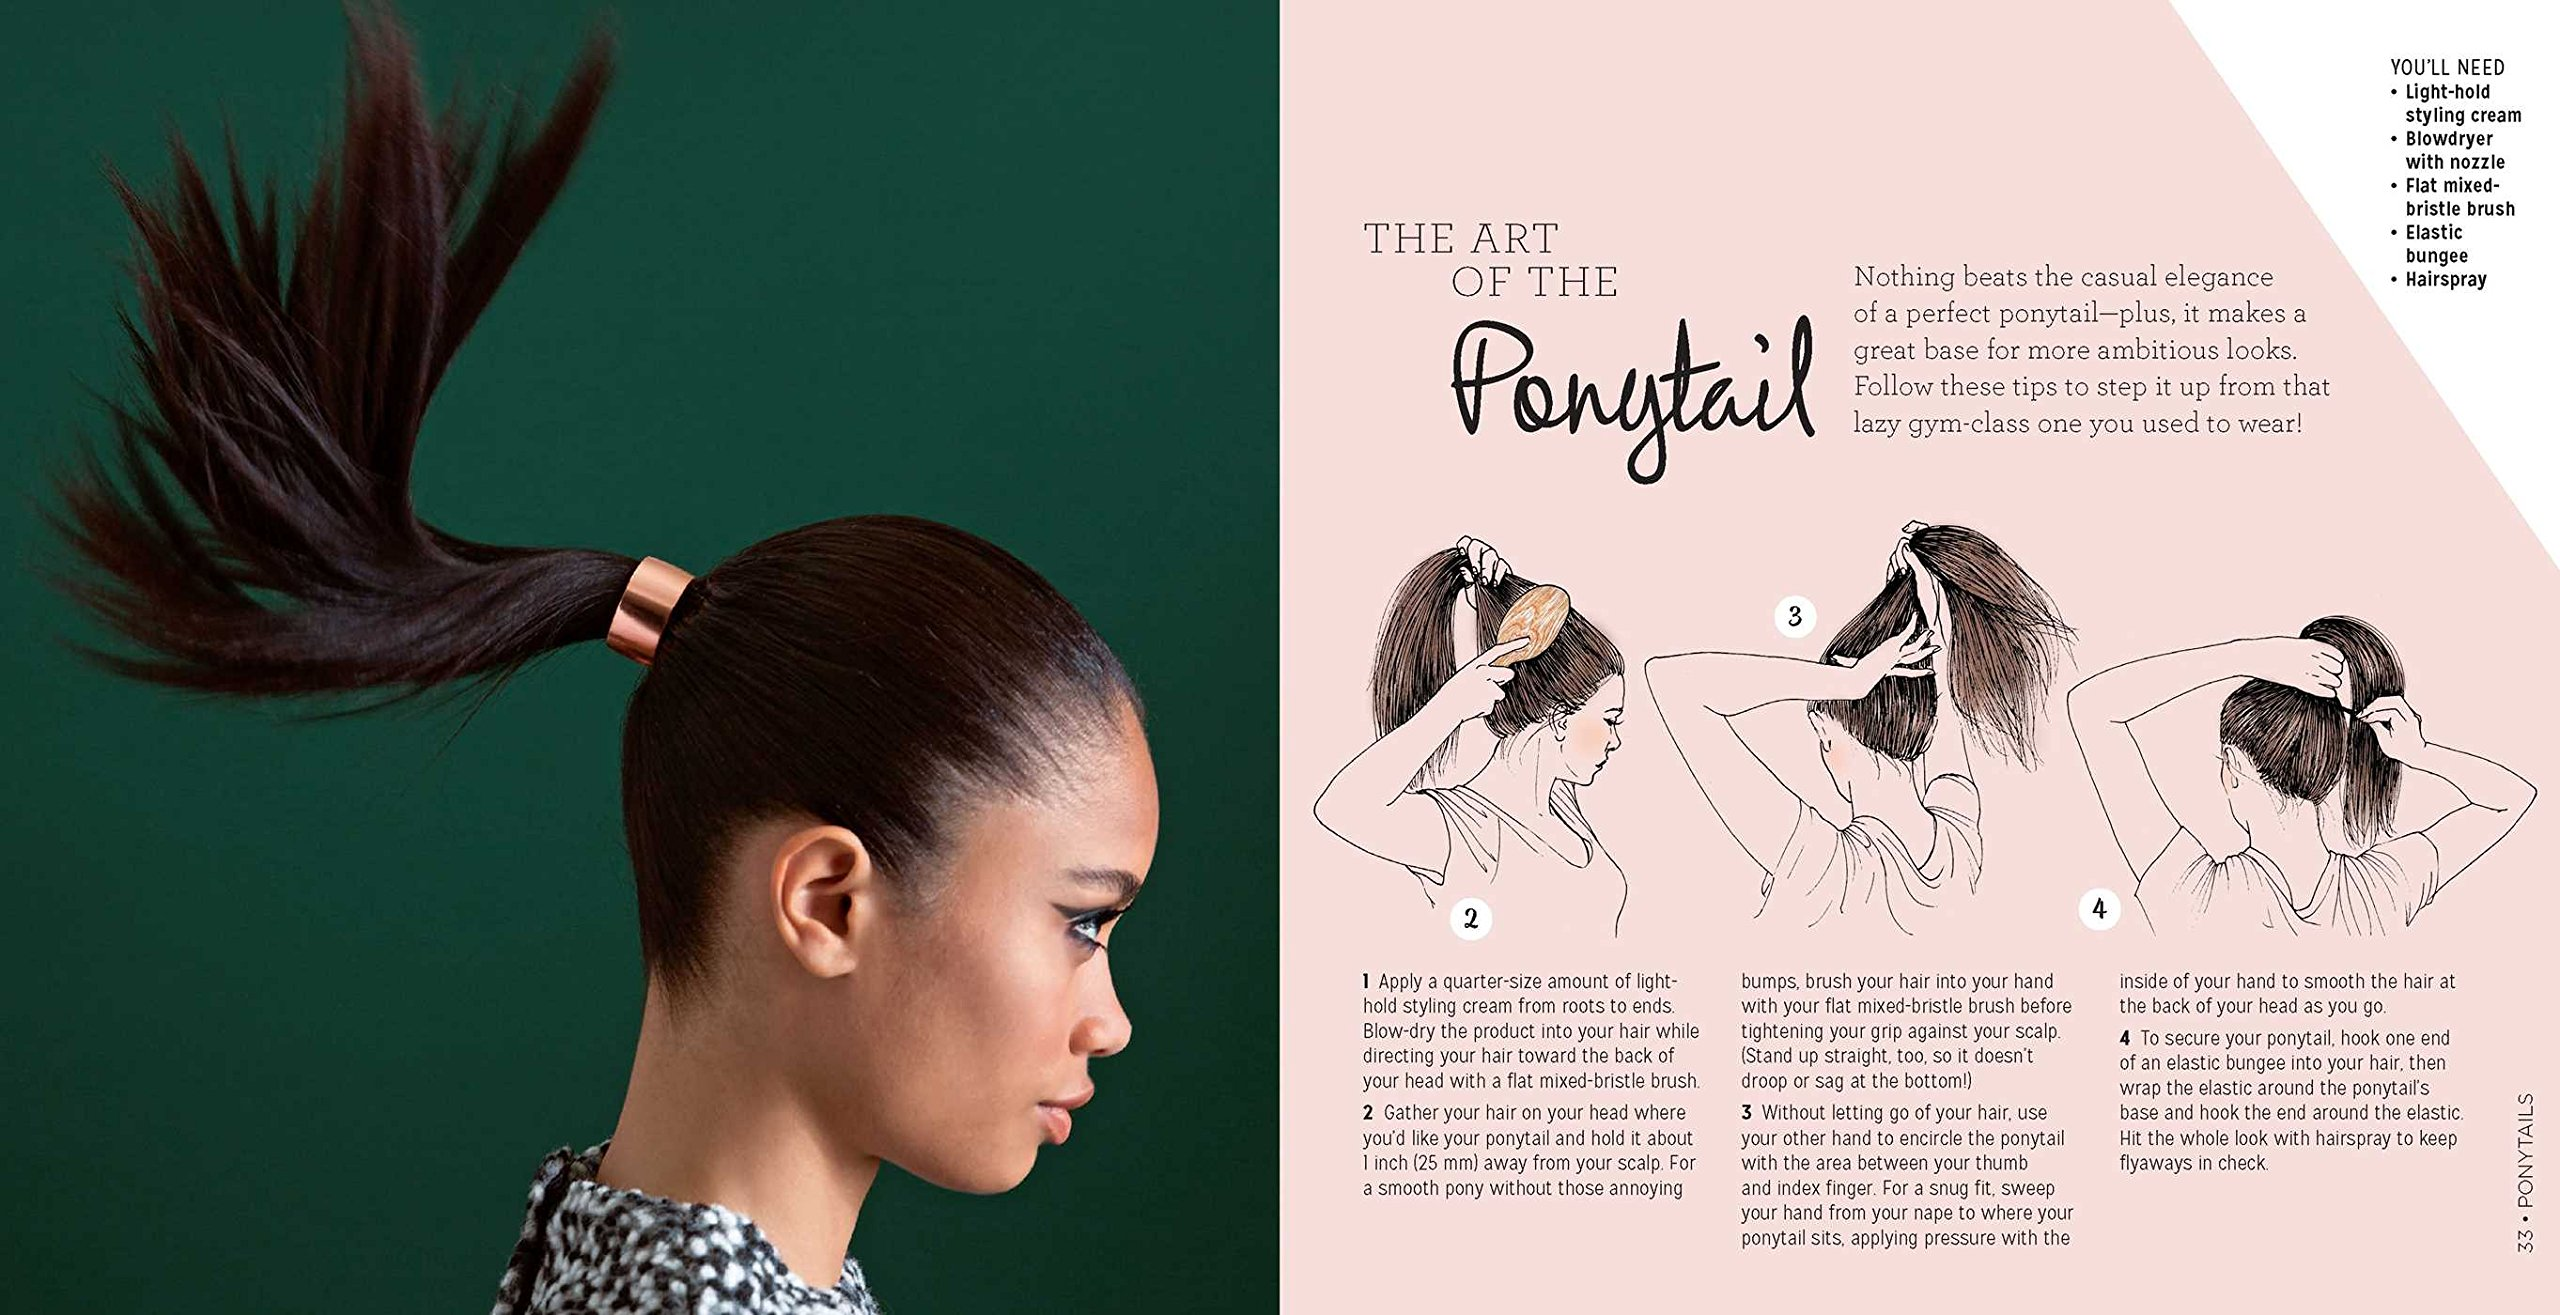 The art of hair the ultimate diy guide to braids buns curls the art of hair the ultimate diy guide to braids buns curls and more rubi jones 9781616288013 amazon books fandeluxe Epub